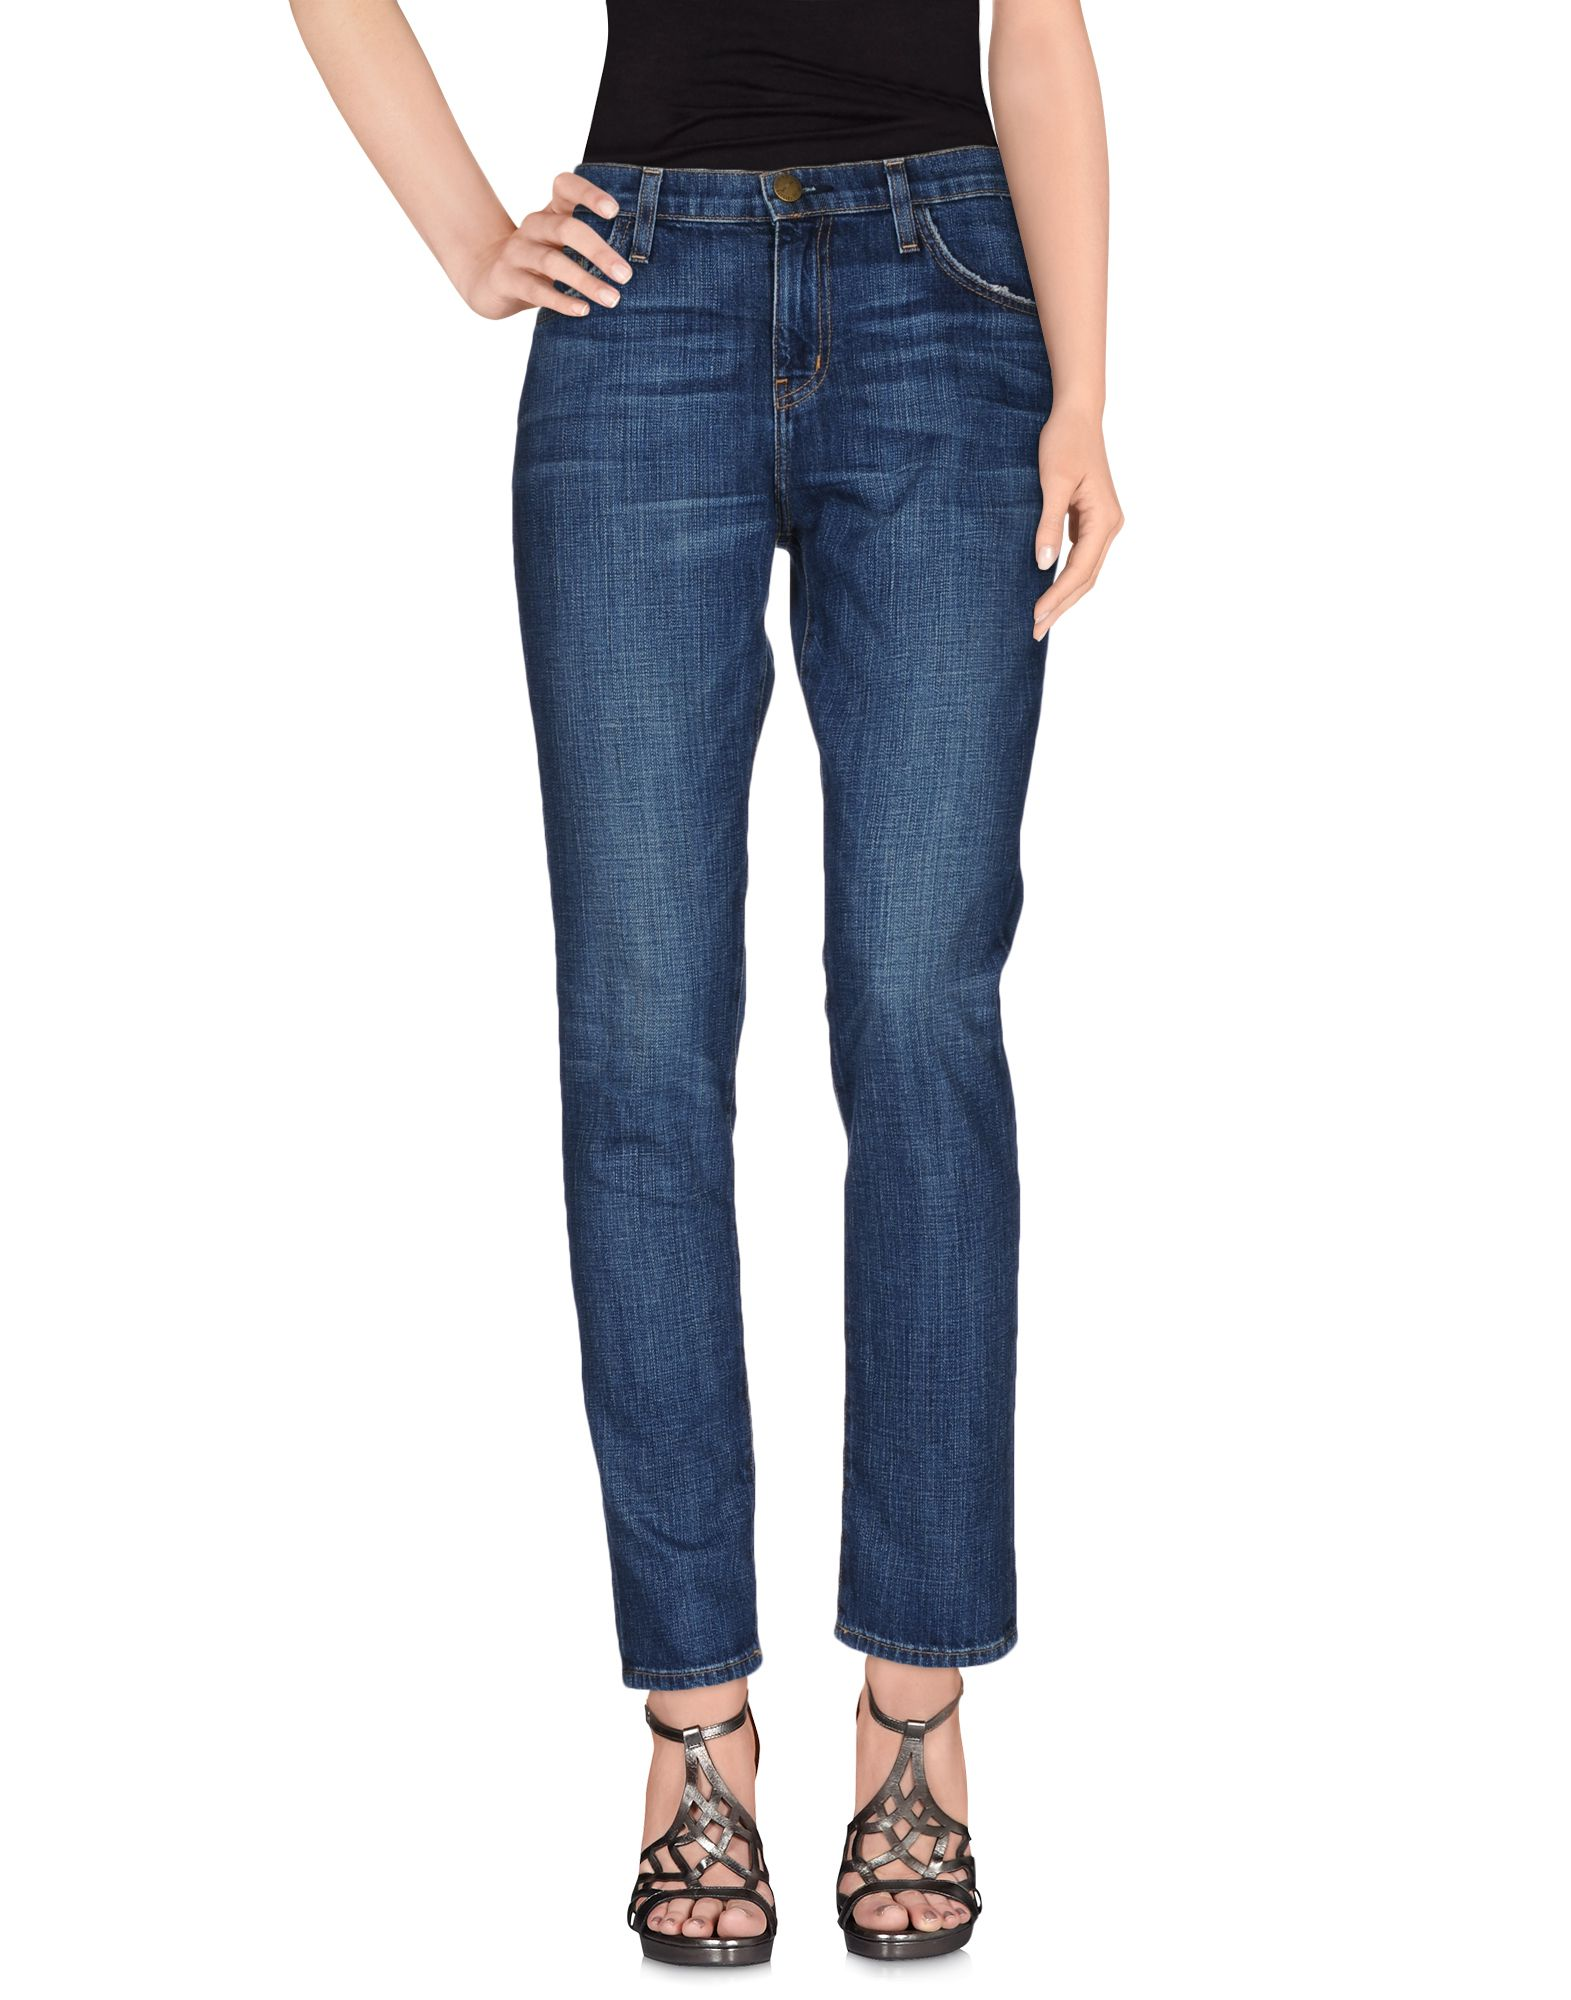 Pantaloni Jeans Current/Elliott Donna - Acquista online su 885goRPq6U